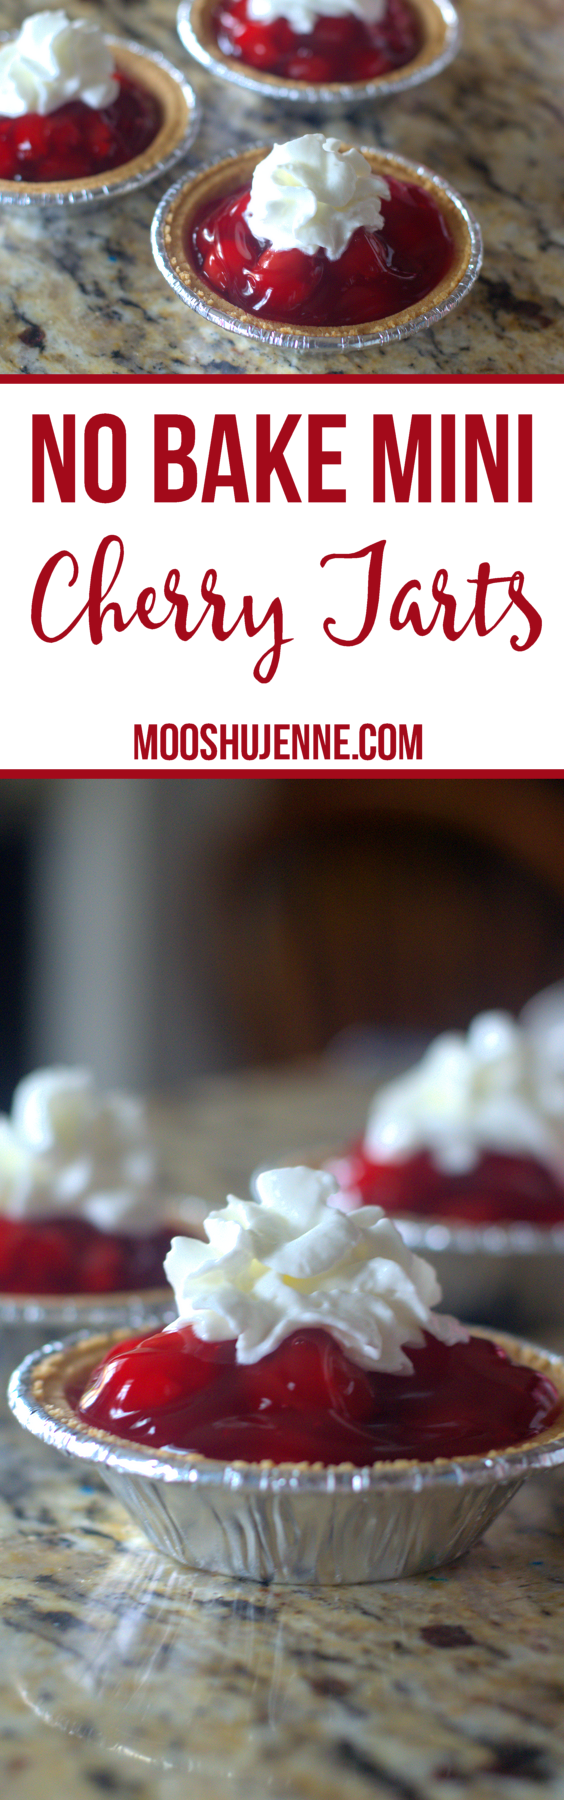 These No Bake Mini Cherry Tarts come together in less than five minutes. They include three ingredients which is also three products to buy. The cost is less than $7 and your not throwing out a entire pie because no one decided to eat it.